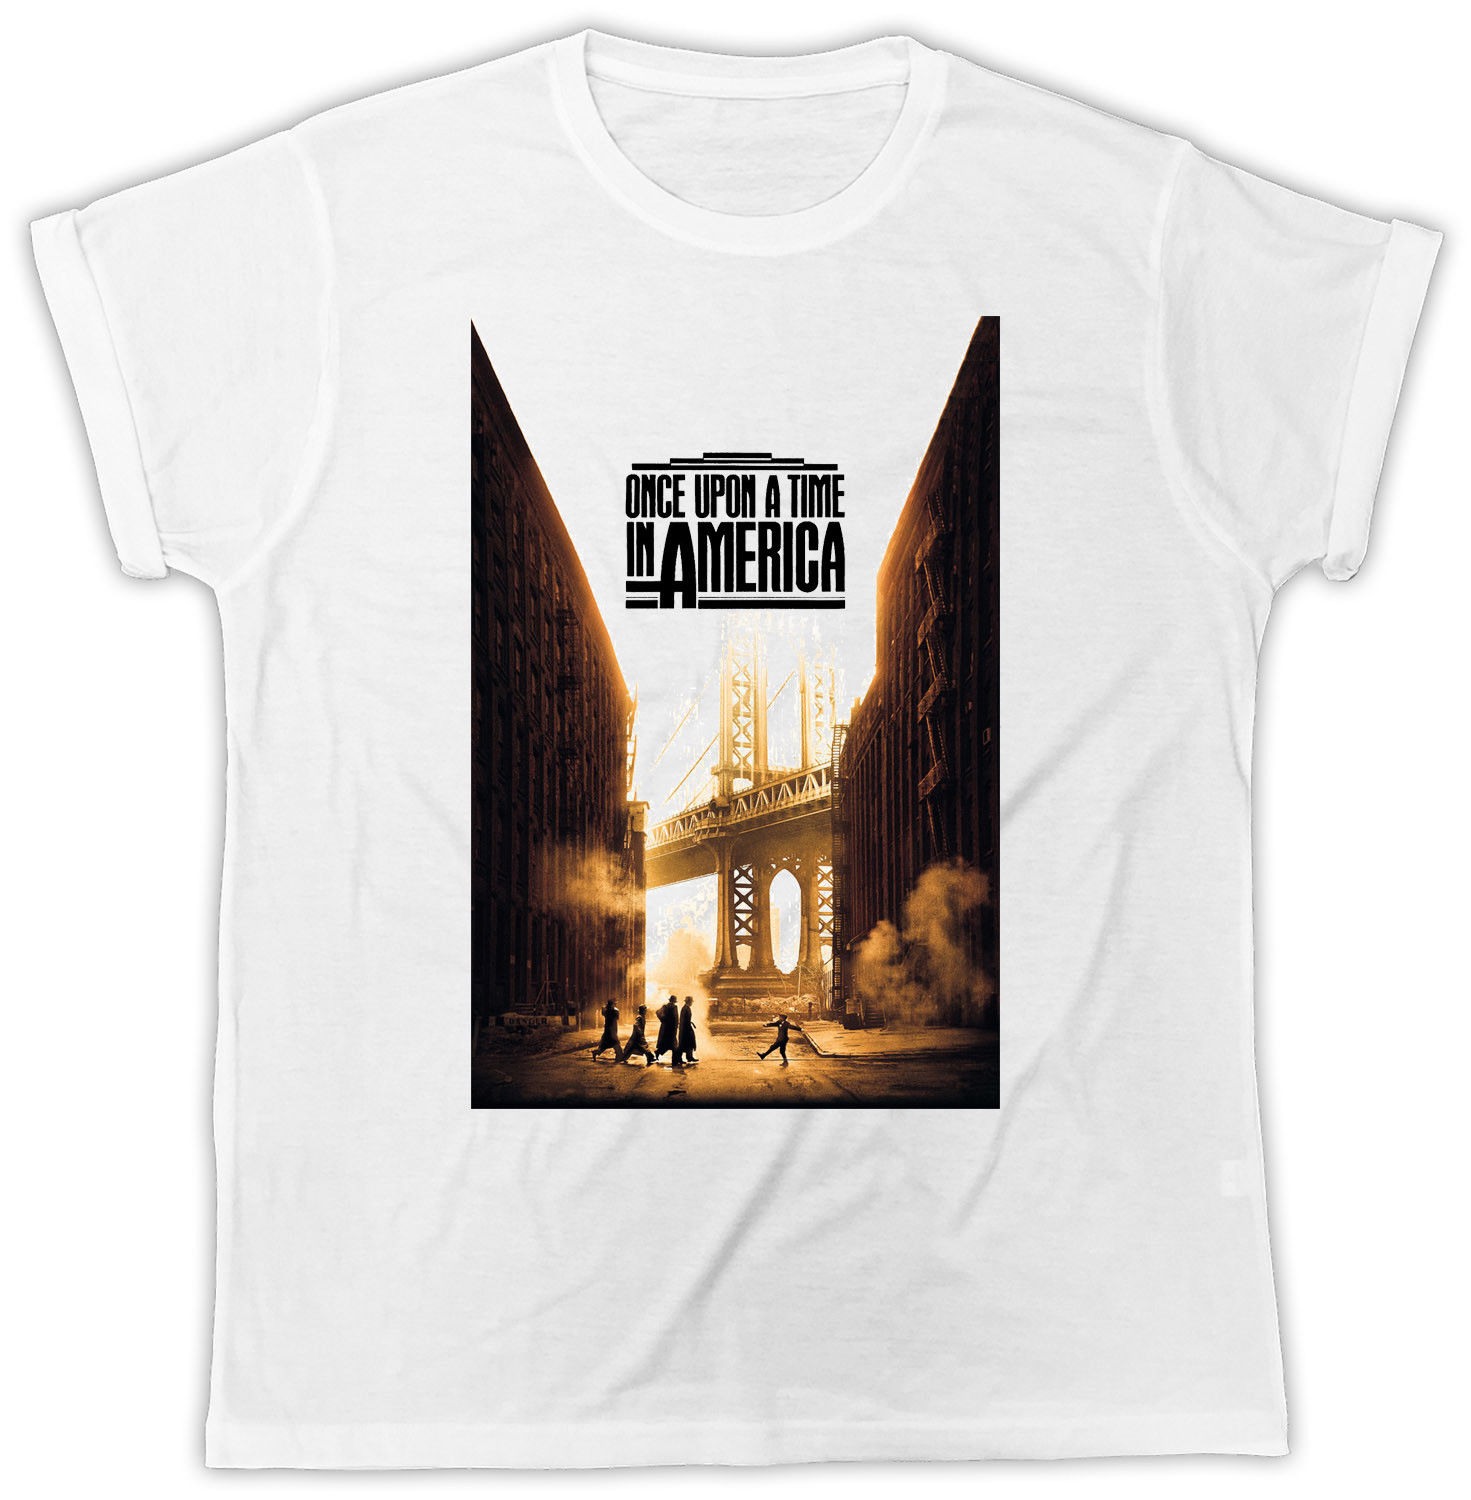 Once Upon a Time in America T Shirt Nostalgia Ideal Present Unisex T-shirt Round Neck Best Selling Male Natural Cotton Shirt image